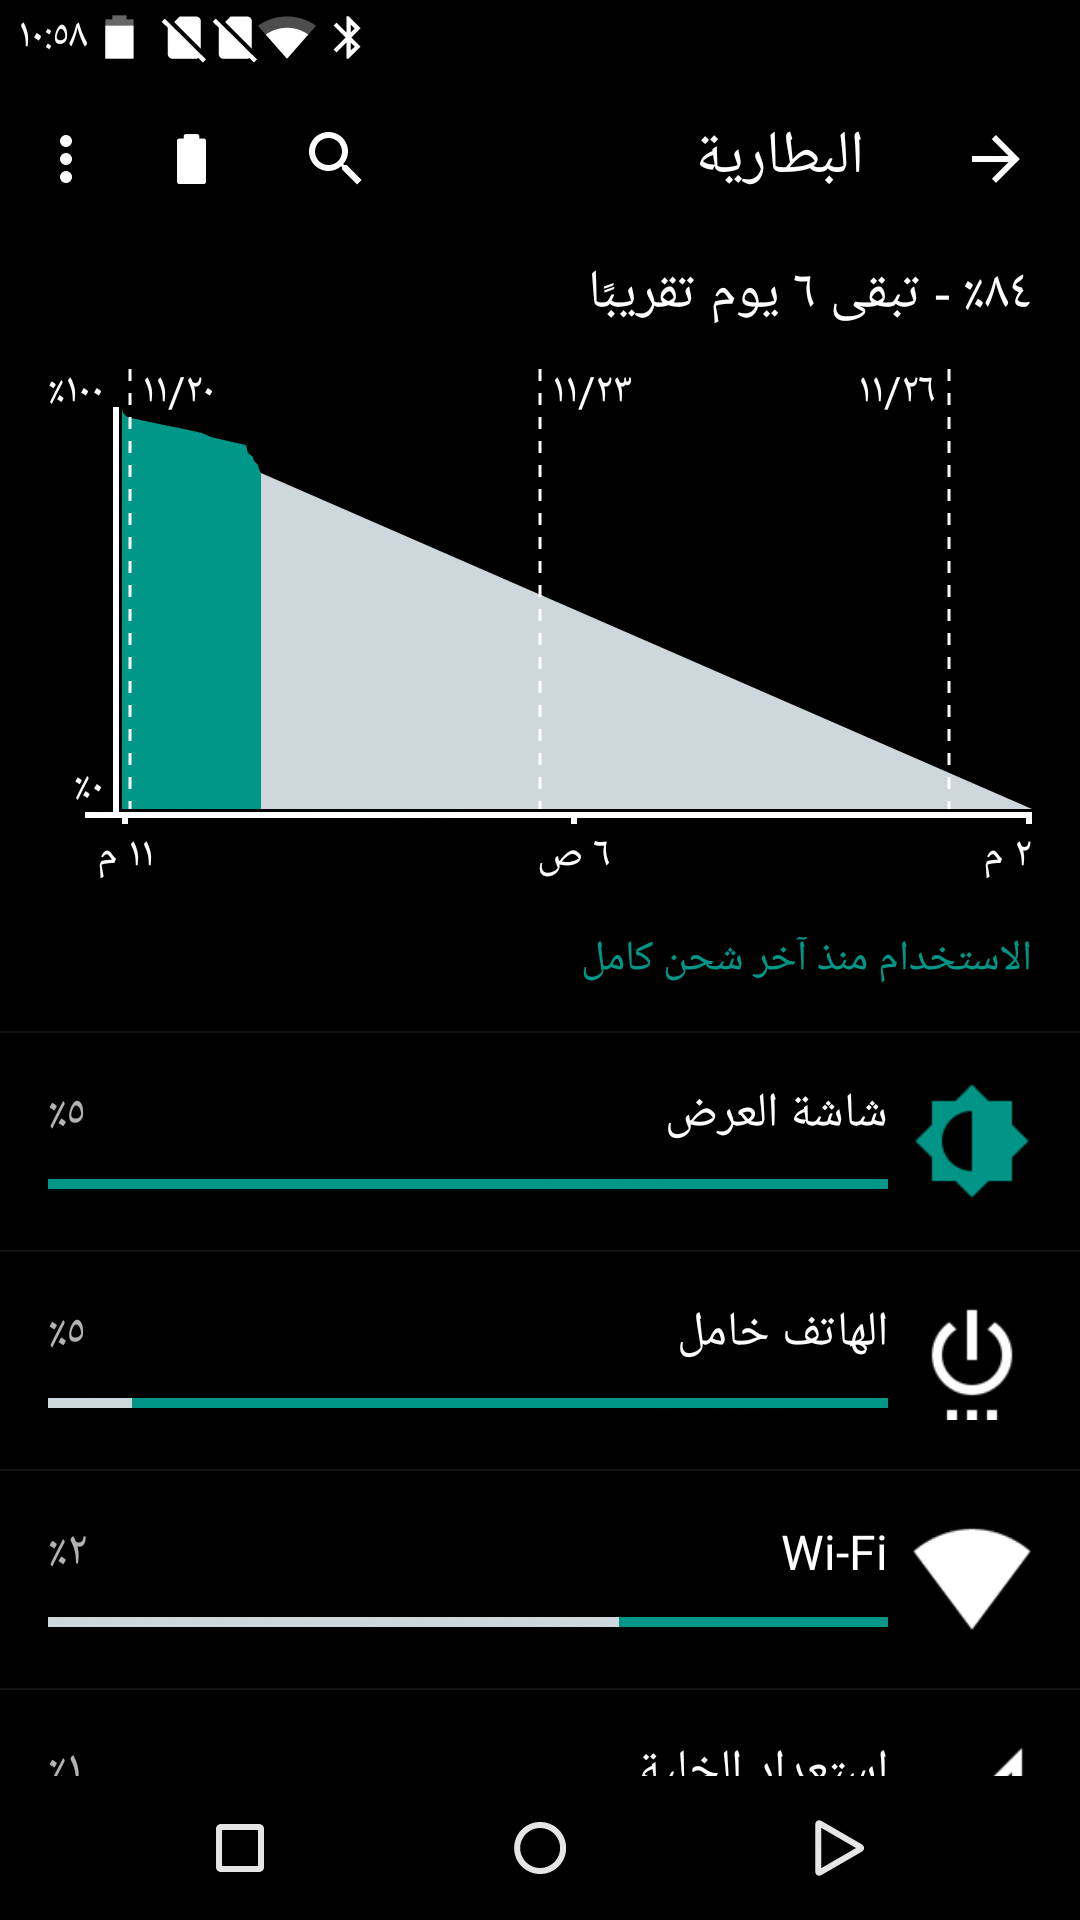 Screenshot_٢٠١٥-١١-٢٠-٢٢-٥٨-٢٨